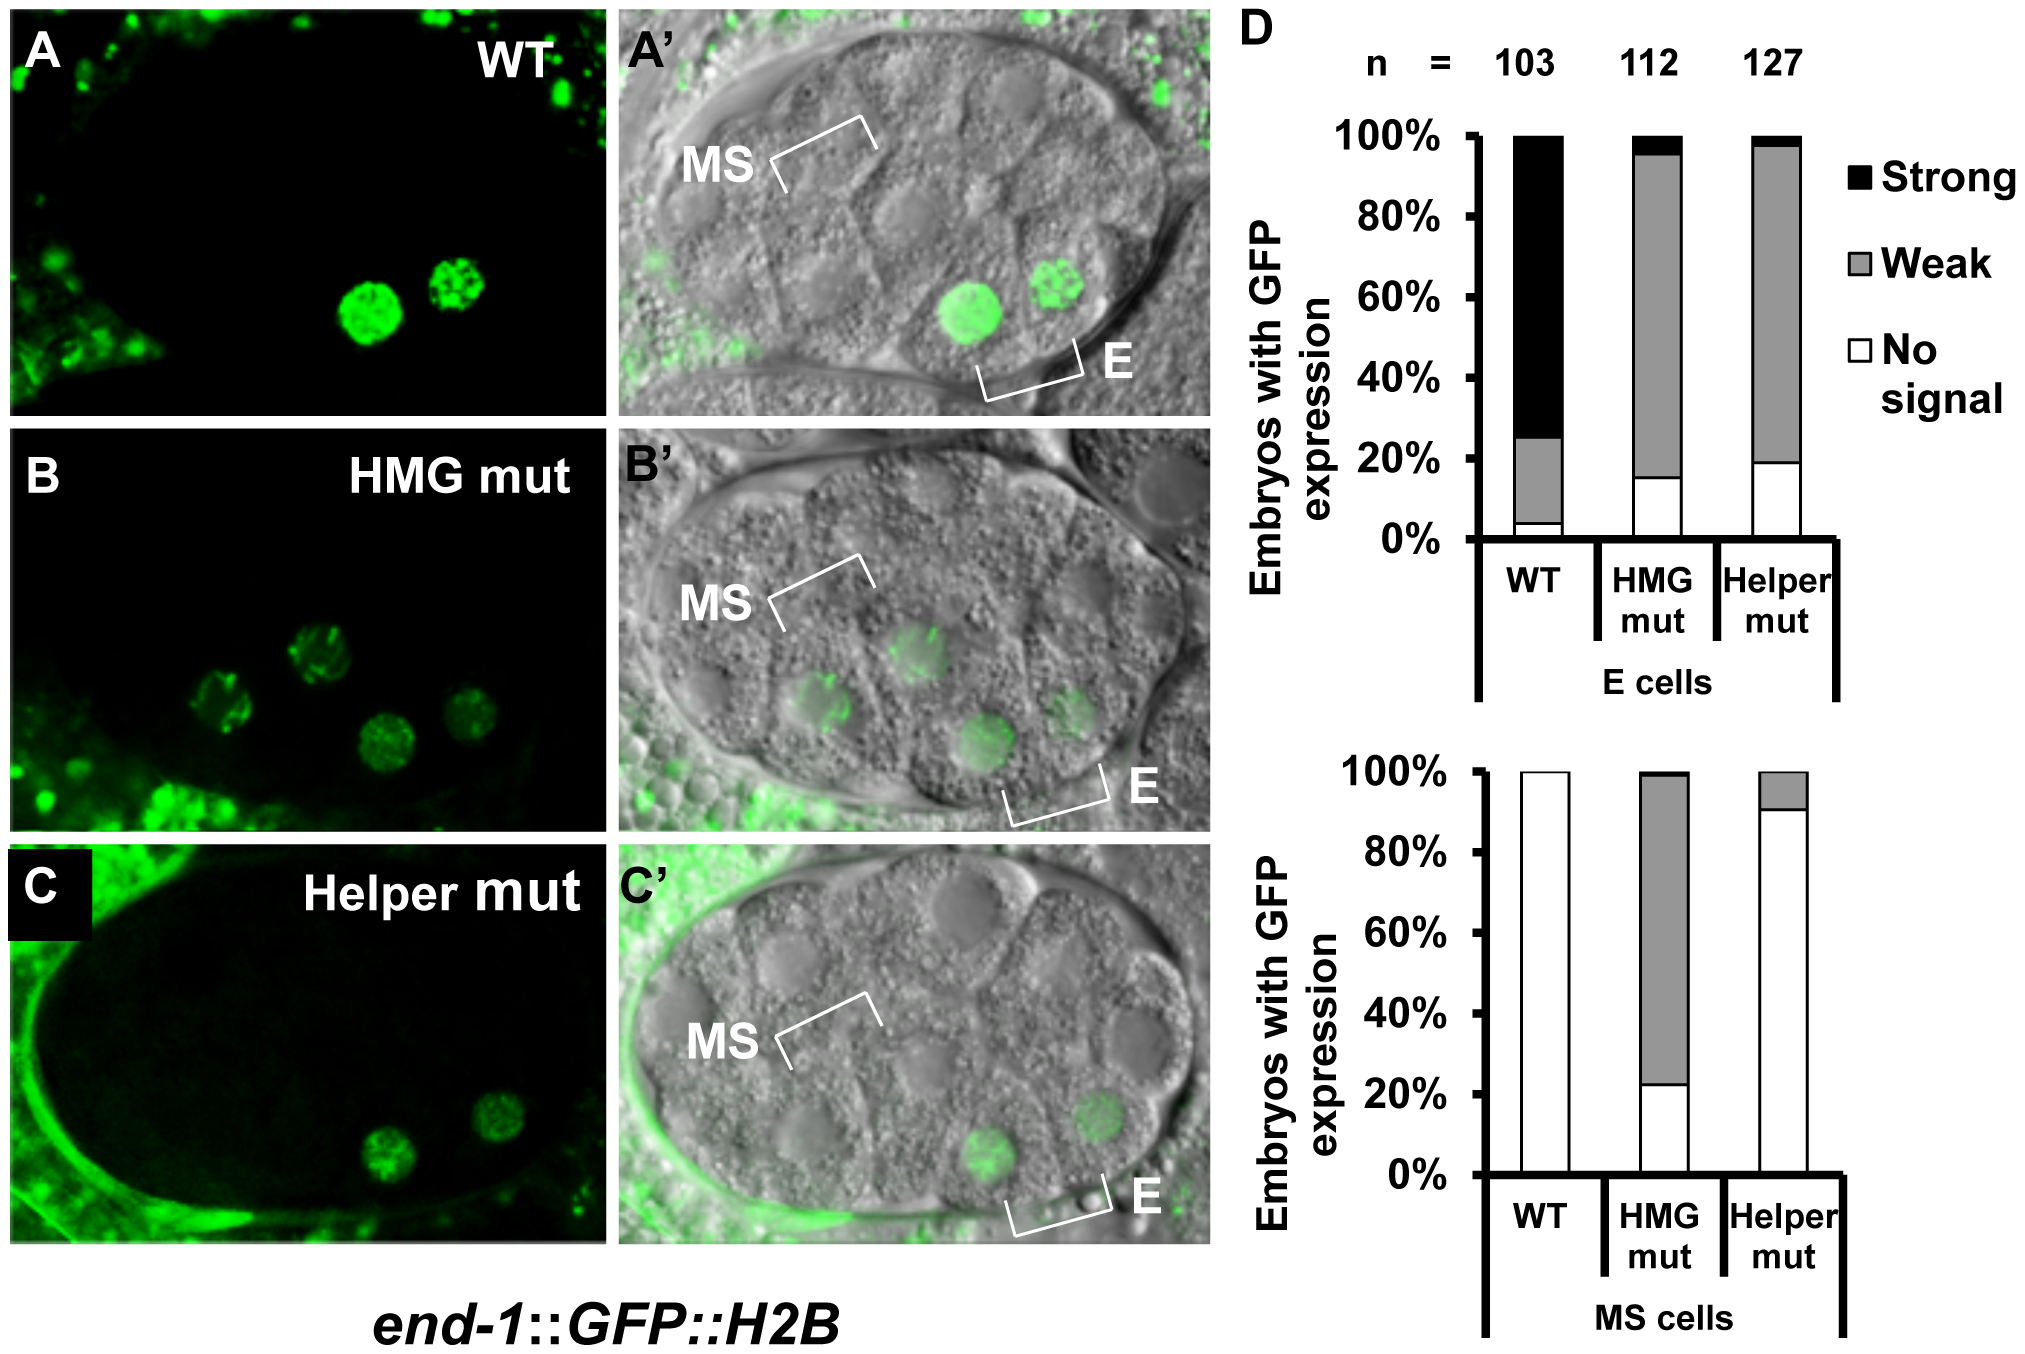 HMG and Helper sites contribute differentially to the regulation of <i>end-1</i> during early embryogenesis.